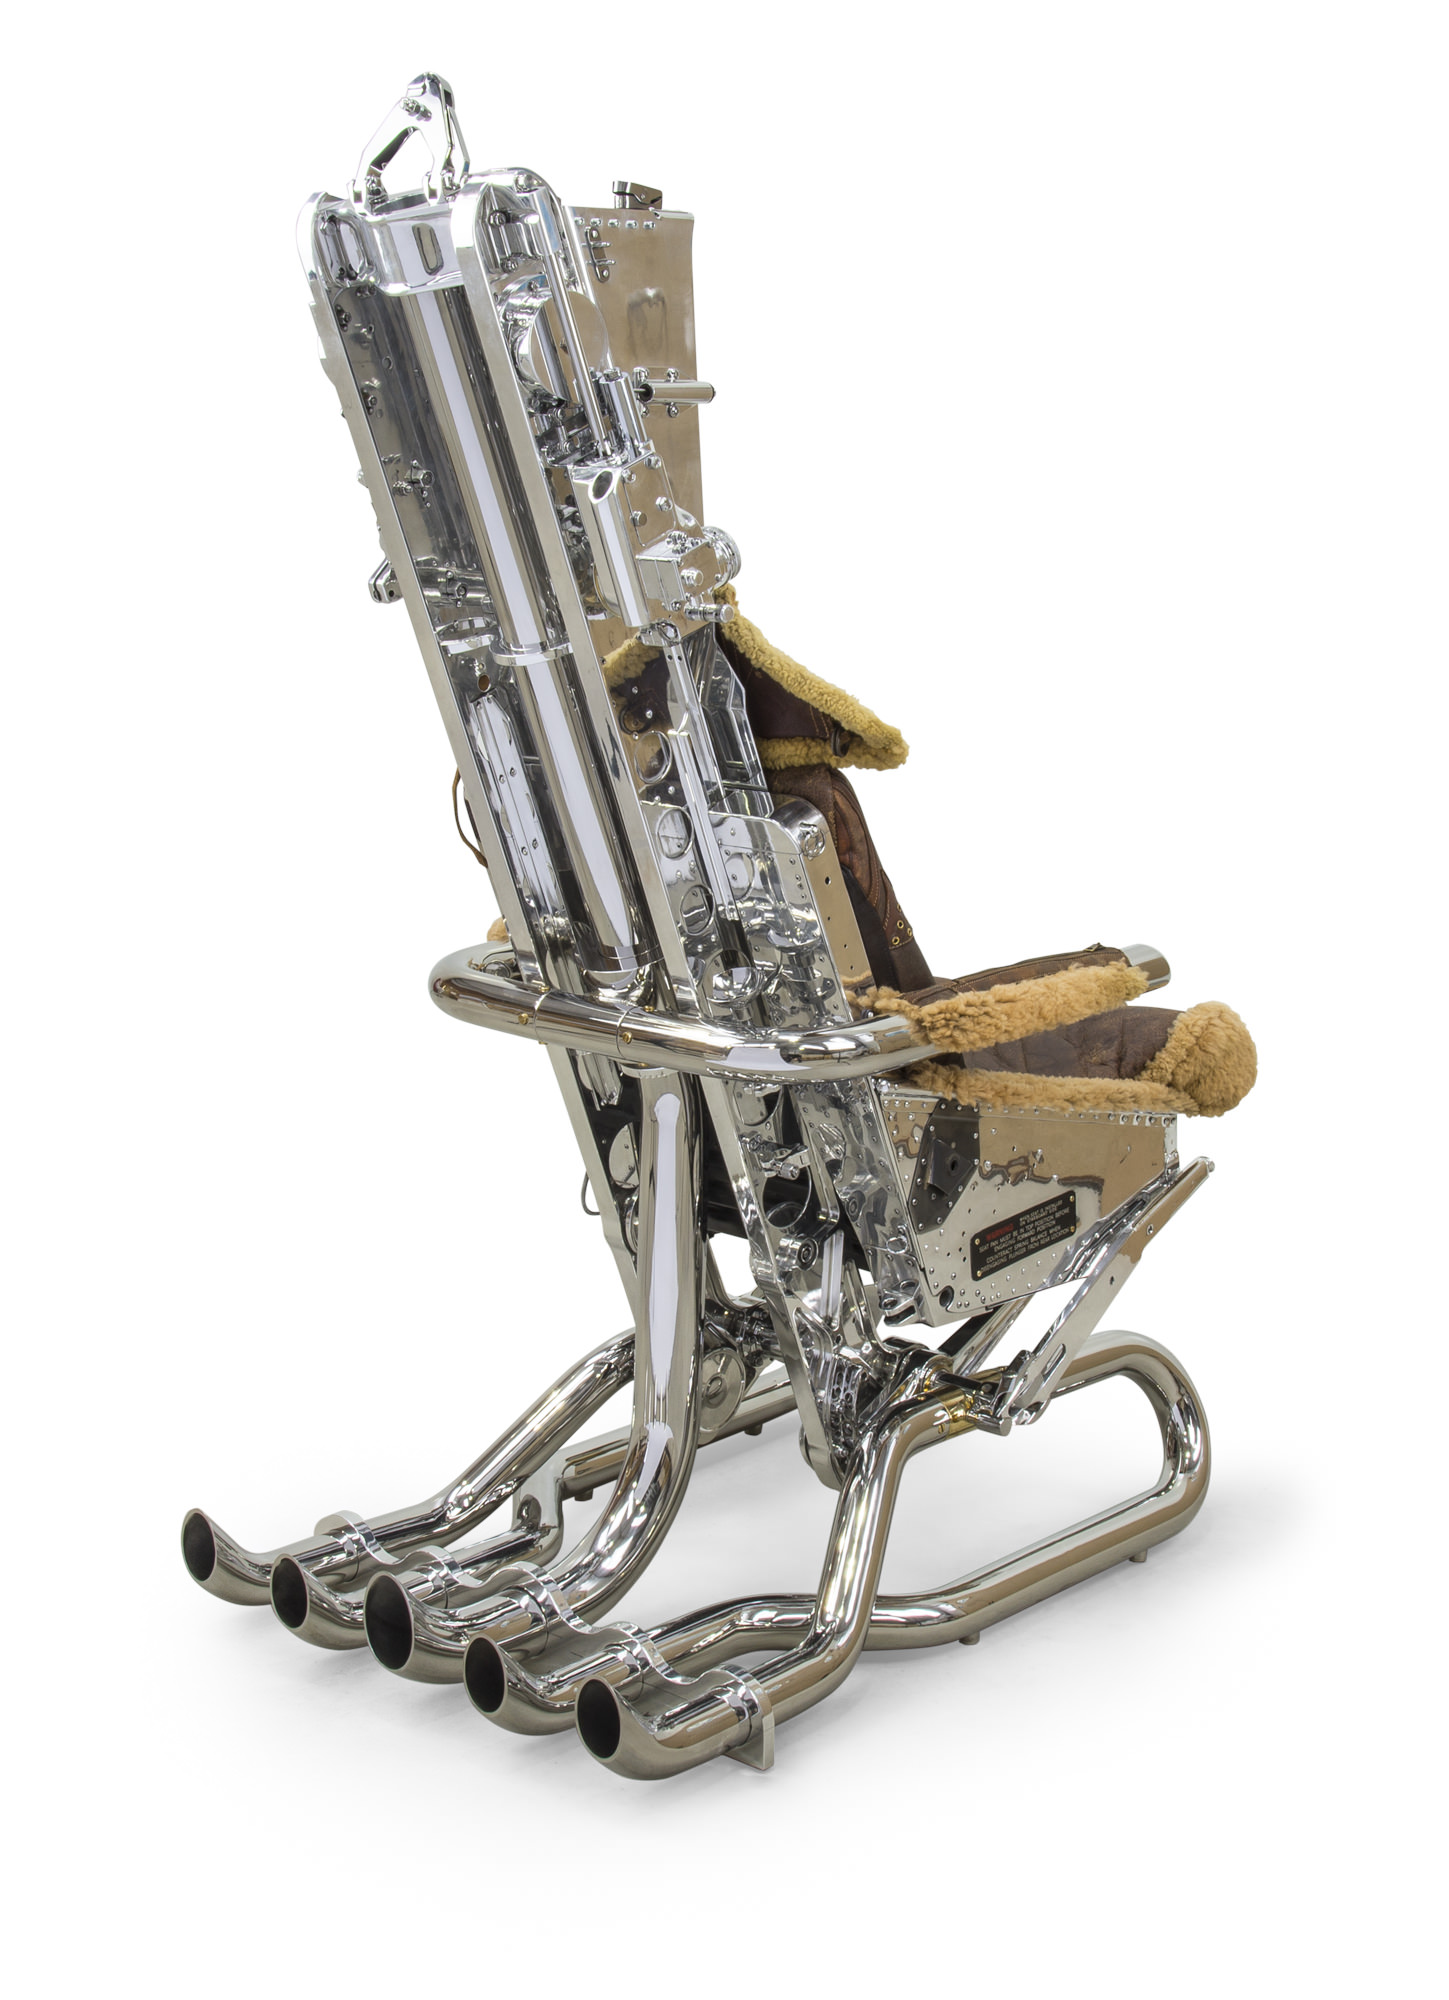 ejection seat office chair rental chairs for wedding ejector man